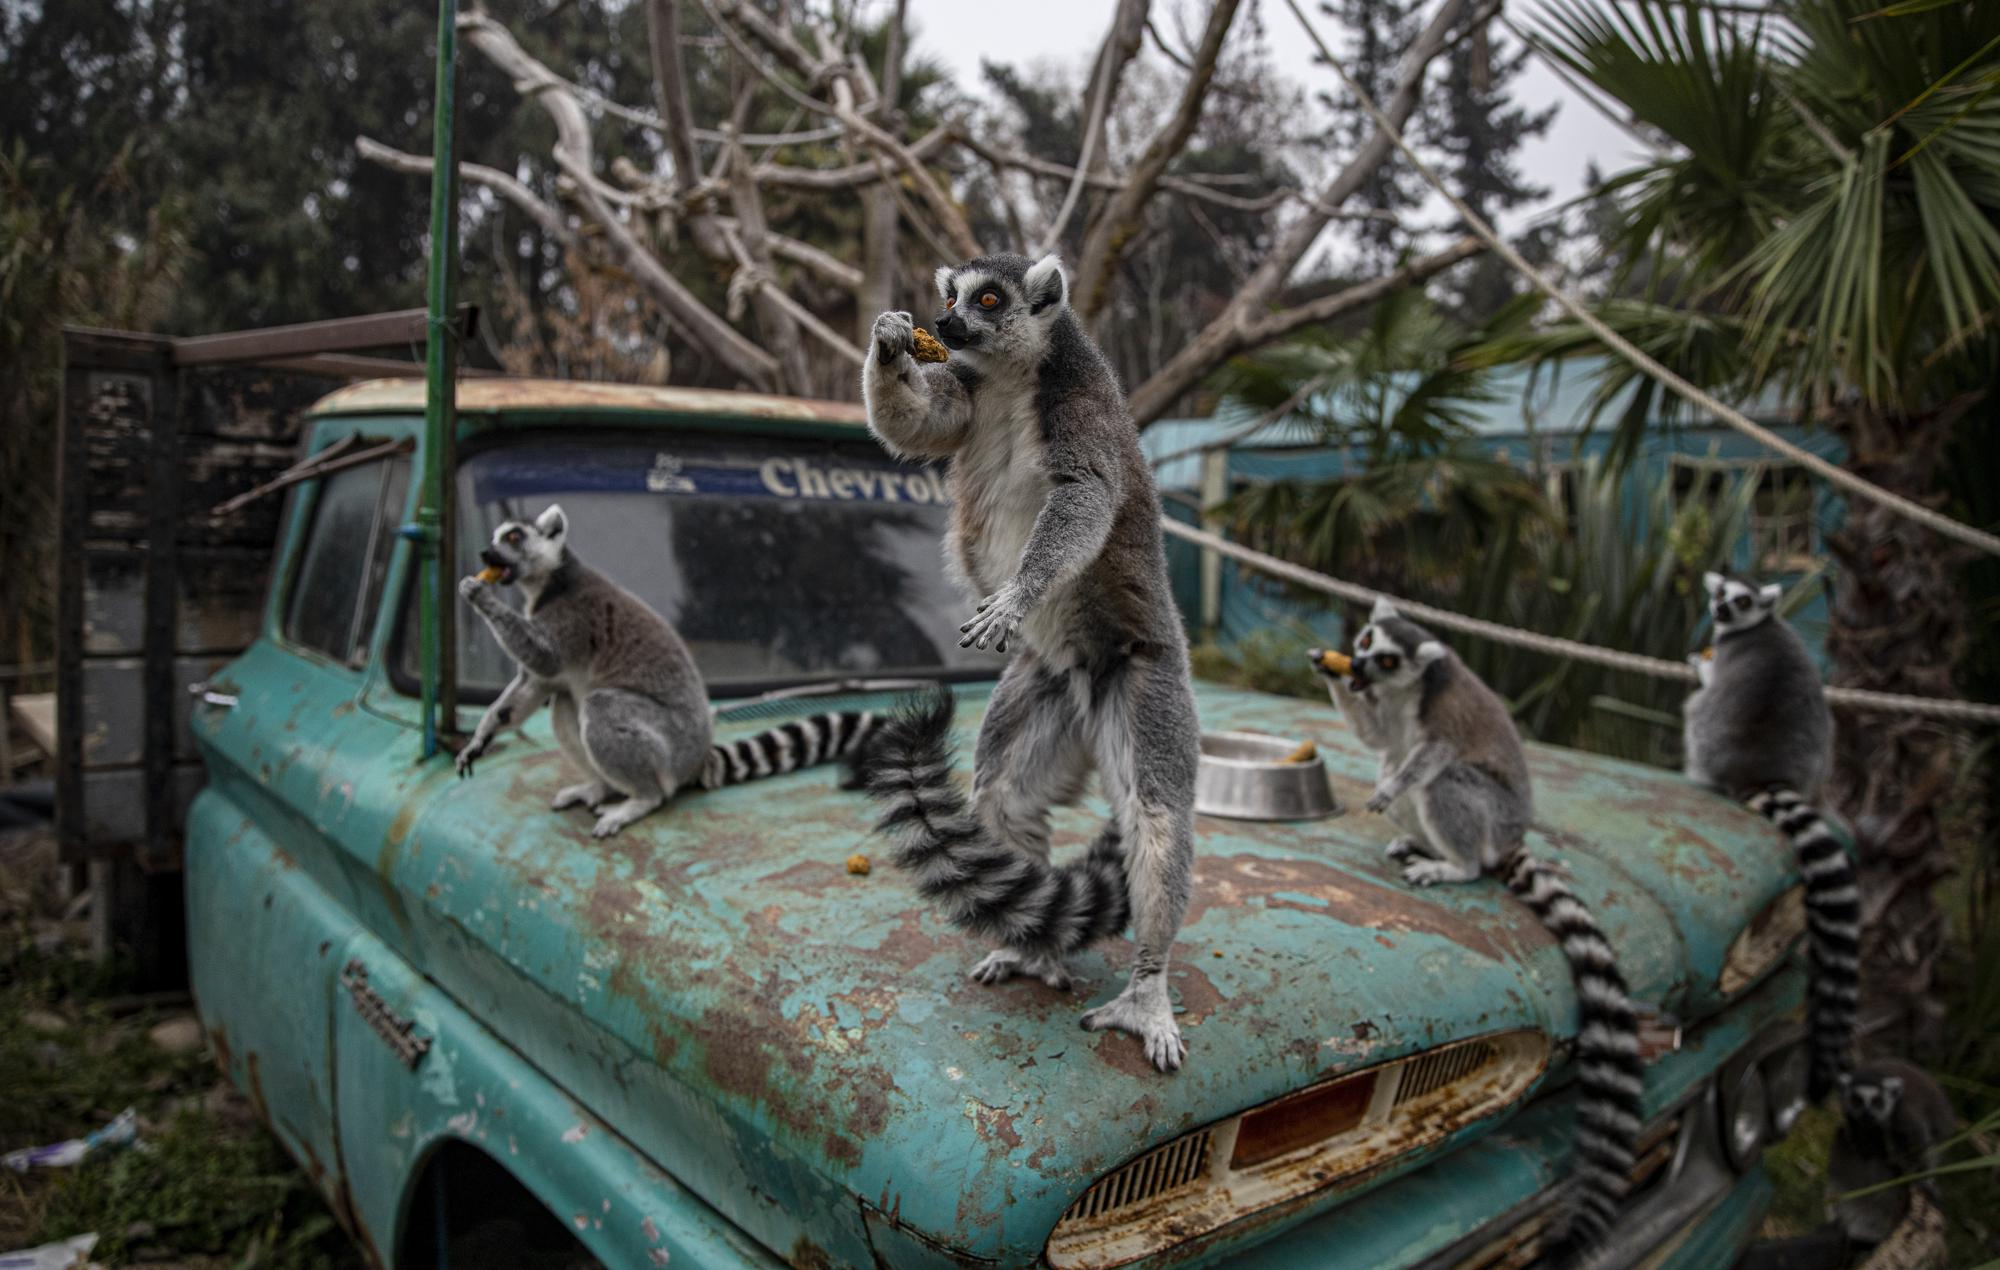 """Ring-tailed lemurs sit on the hood of a truck while snacking inside the Buin Zoo in Santiago, Chile, Tuesday, June 15, 2021. The largest private zoo in Chile, experiencing a serious economic situation due to the closure of its doors as a result of the prolonged quarantine measures to contain the COVID-19 pandemic, has started a campaign called """"Sponsor an Animal"""" to raise money to maintain them. (AP Photo/Esteban Felix)"""